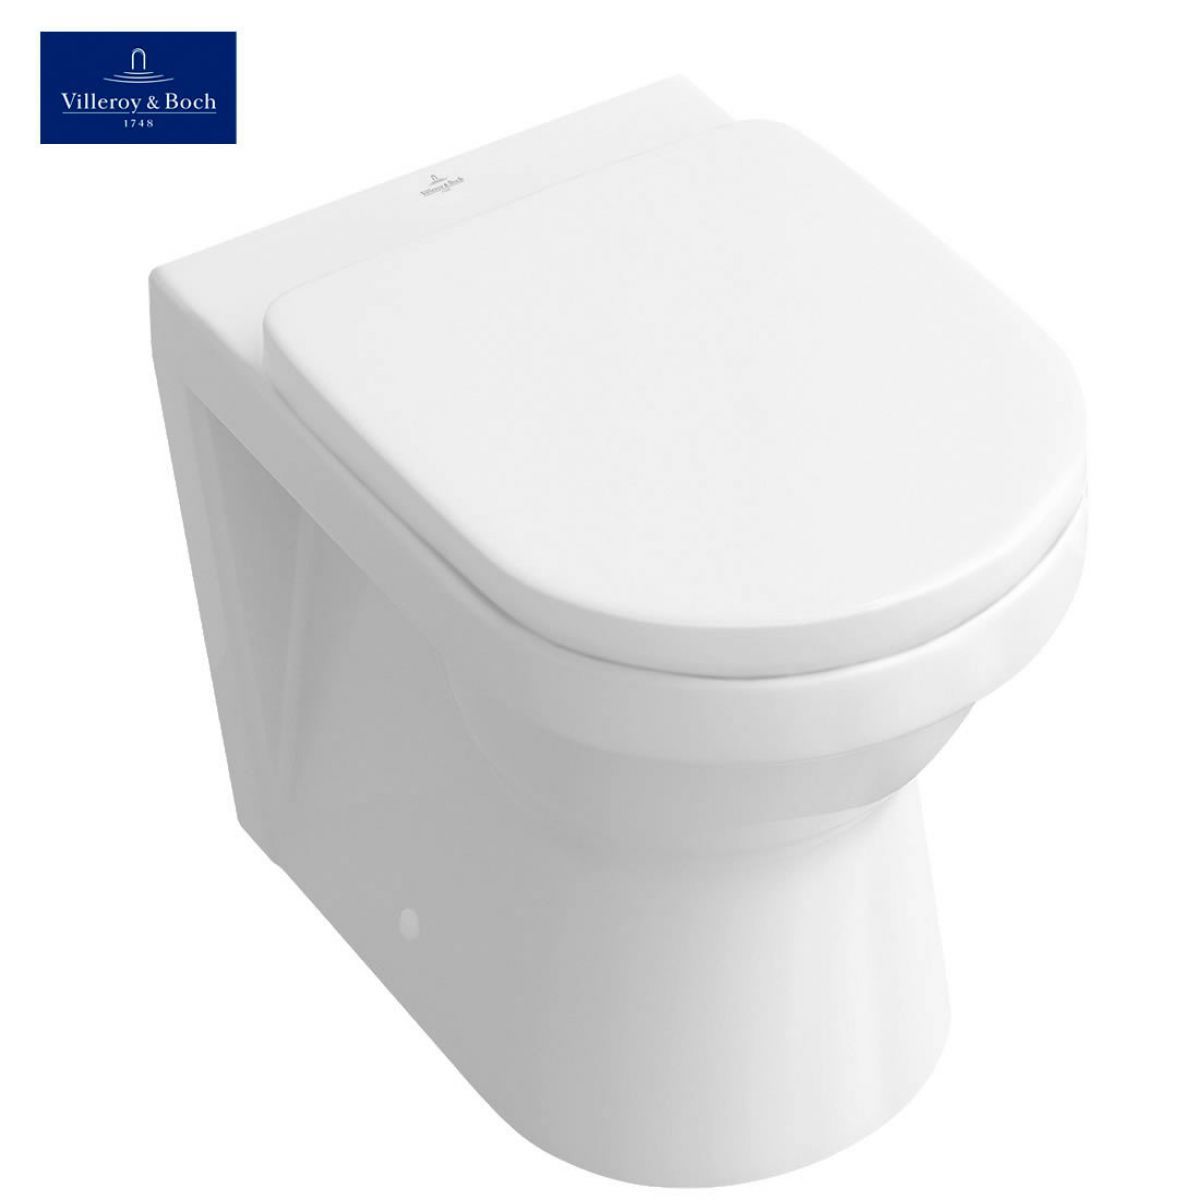 circular toilet seat uk. Circular Toilet Seat Uk  N Yourrights co